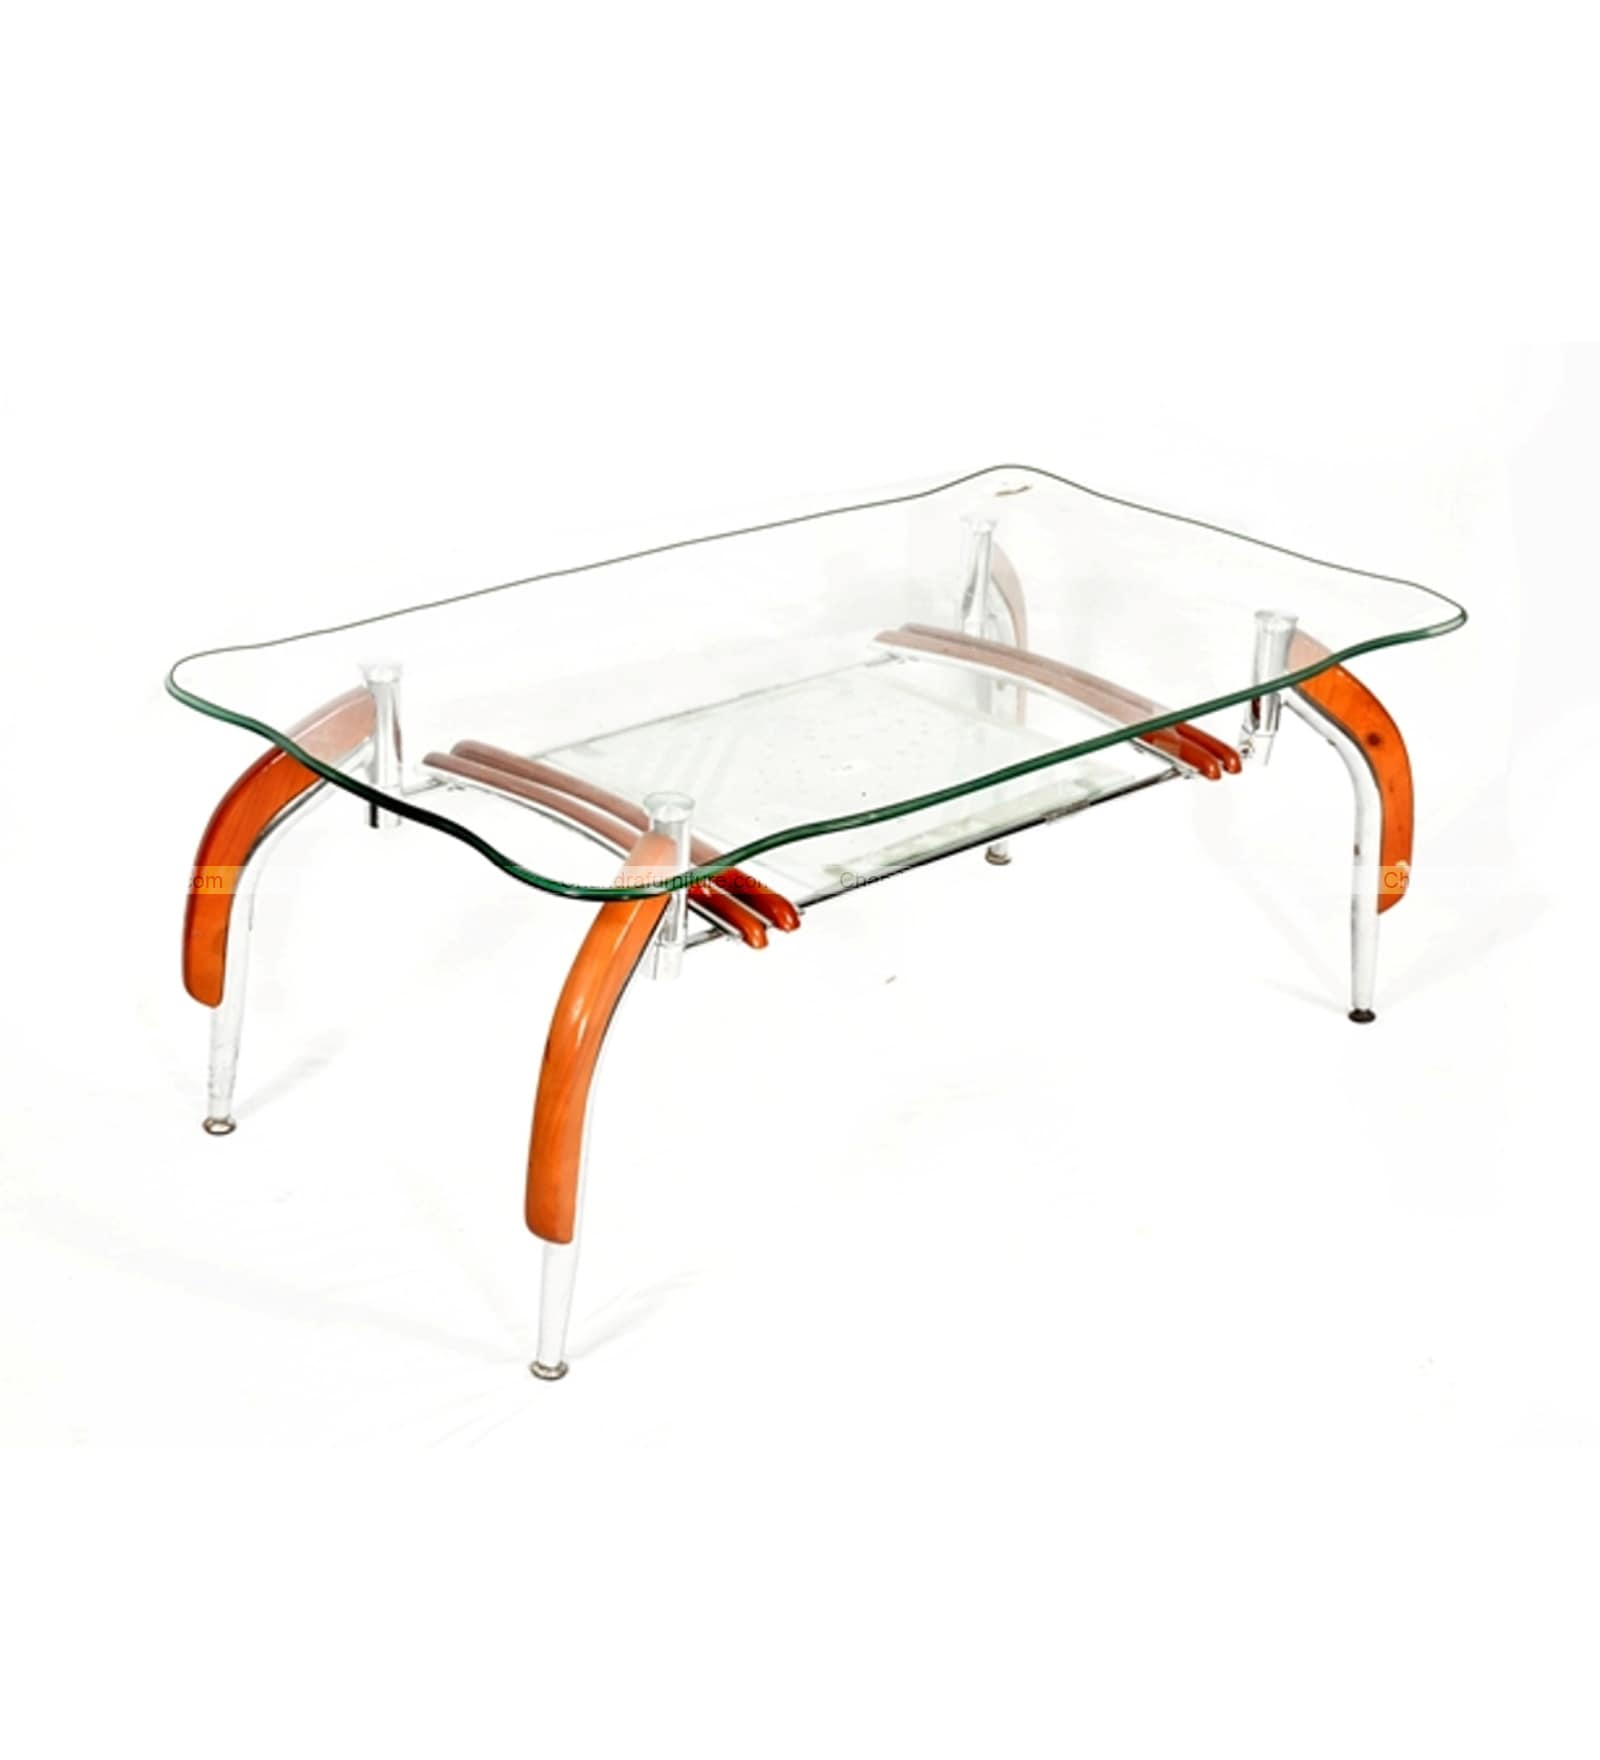 CHANDRA FURNITURE CENTER TABLE  CT-908